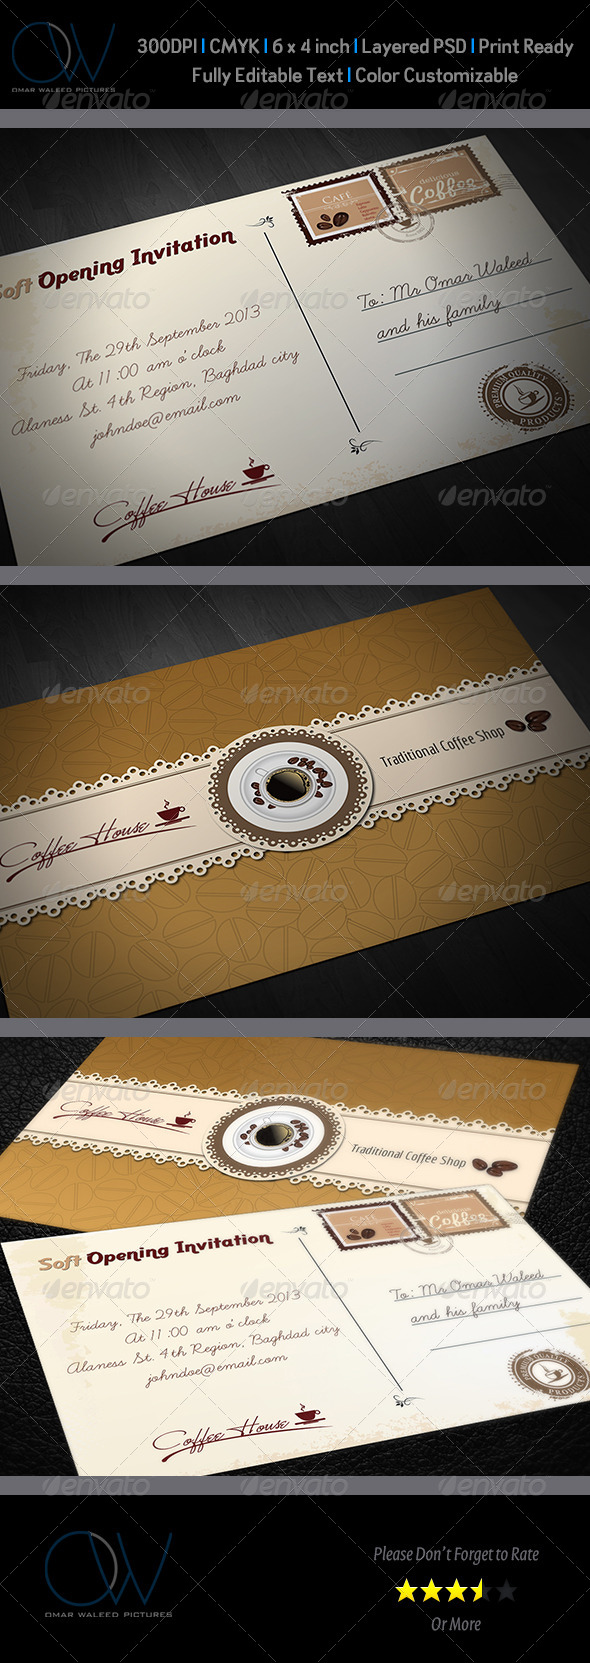 Cafe Invitation Card Vol.2 - Cards & Invites Print Templates